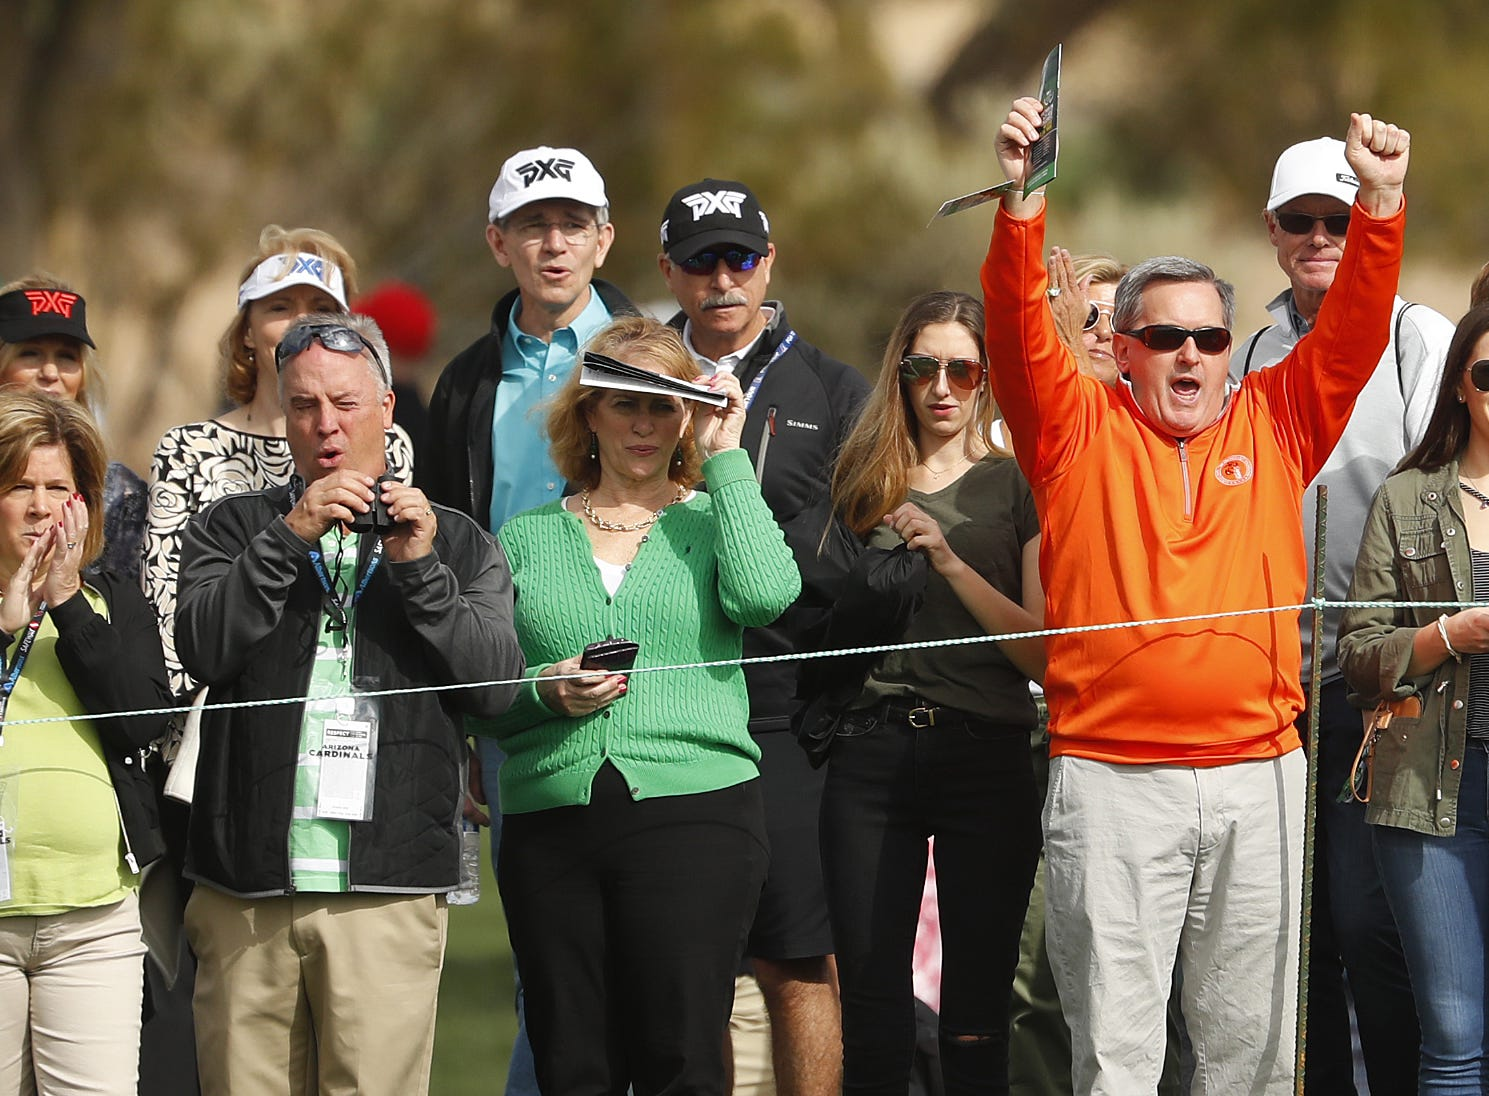 Fans react to a made putt on the 9th green during the third round of the Waste Management Phoenix Open at TPC Scottsdale in Scottsdale, Ariz. on February 2, 2019.